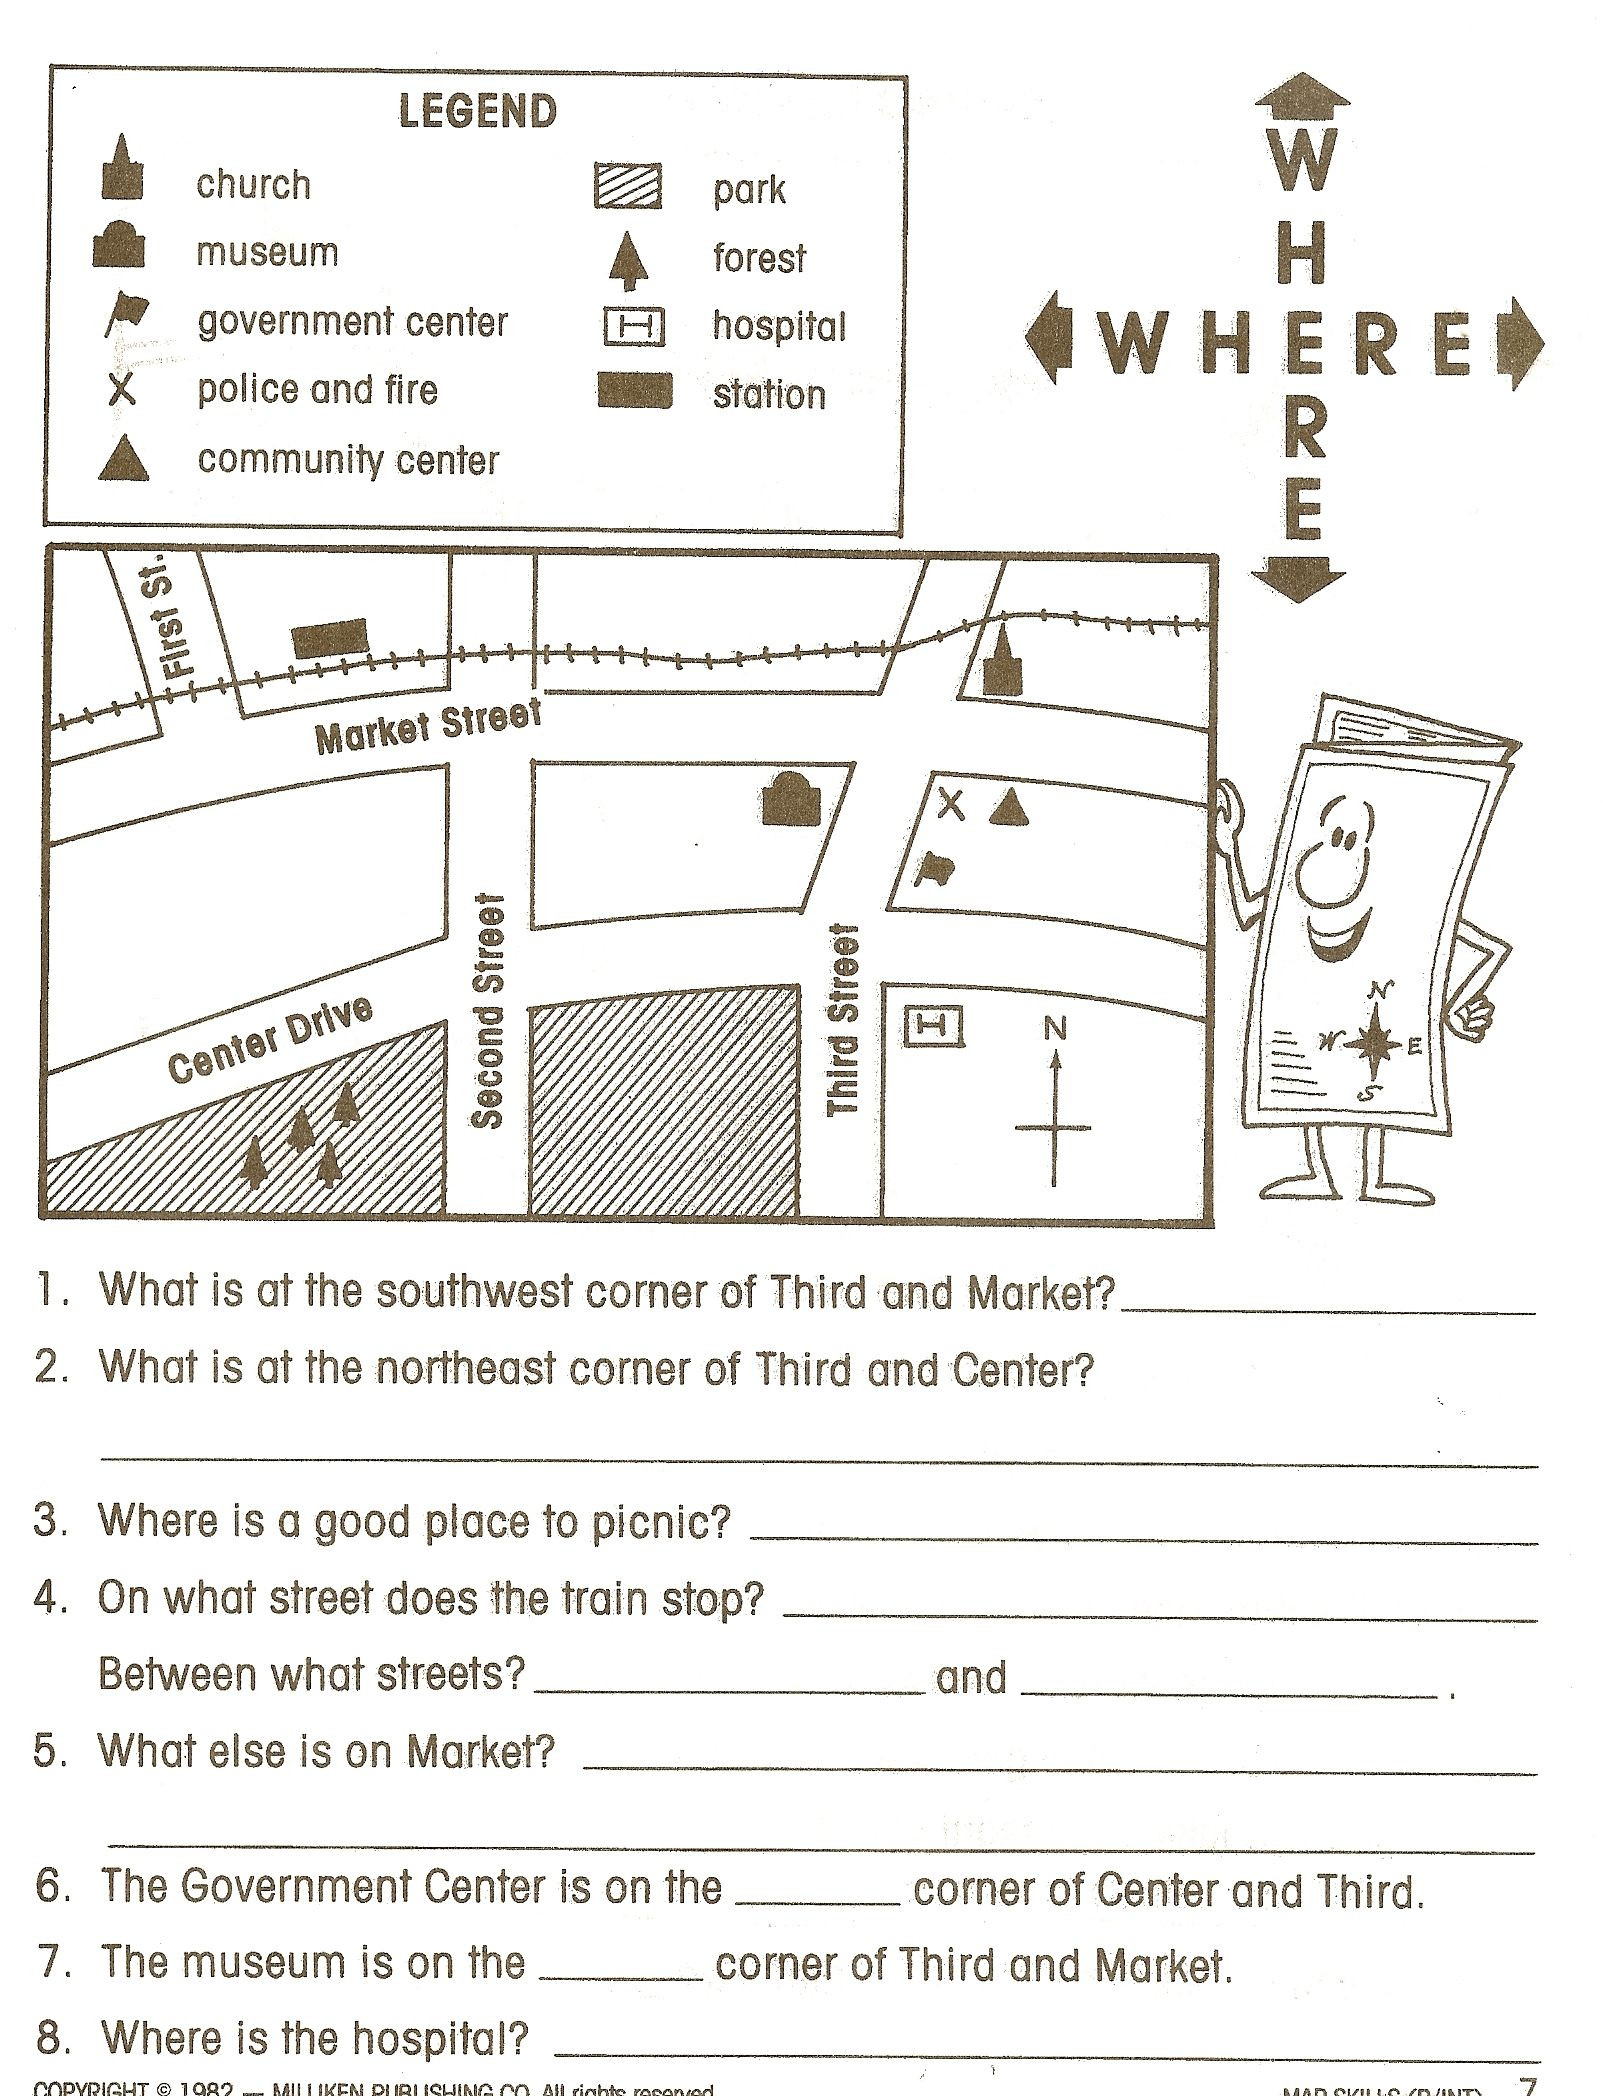 6th Grade social Studies Worksheet Mr Proehl S social Stu S Class